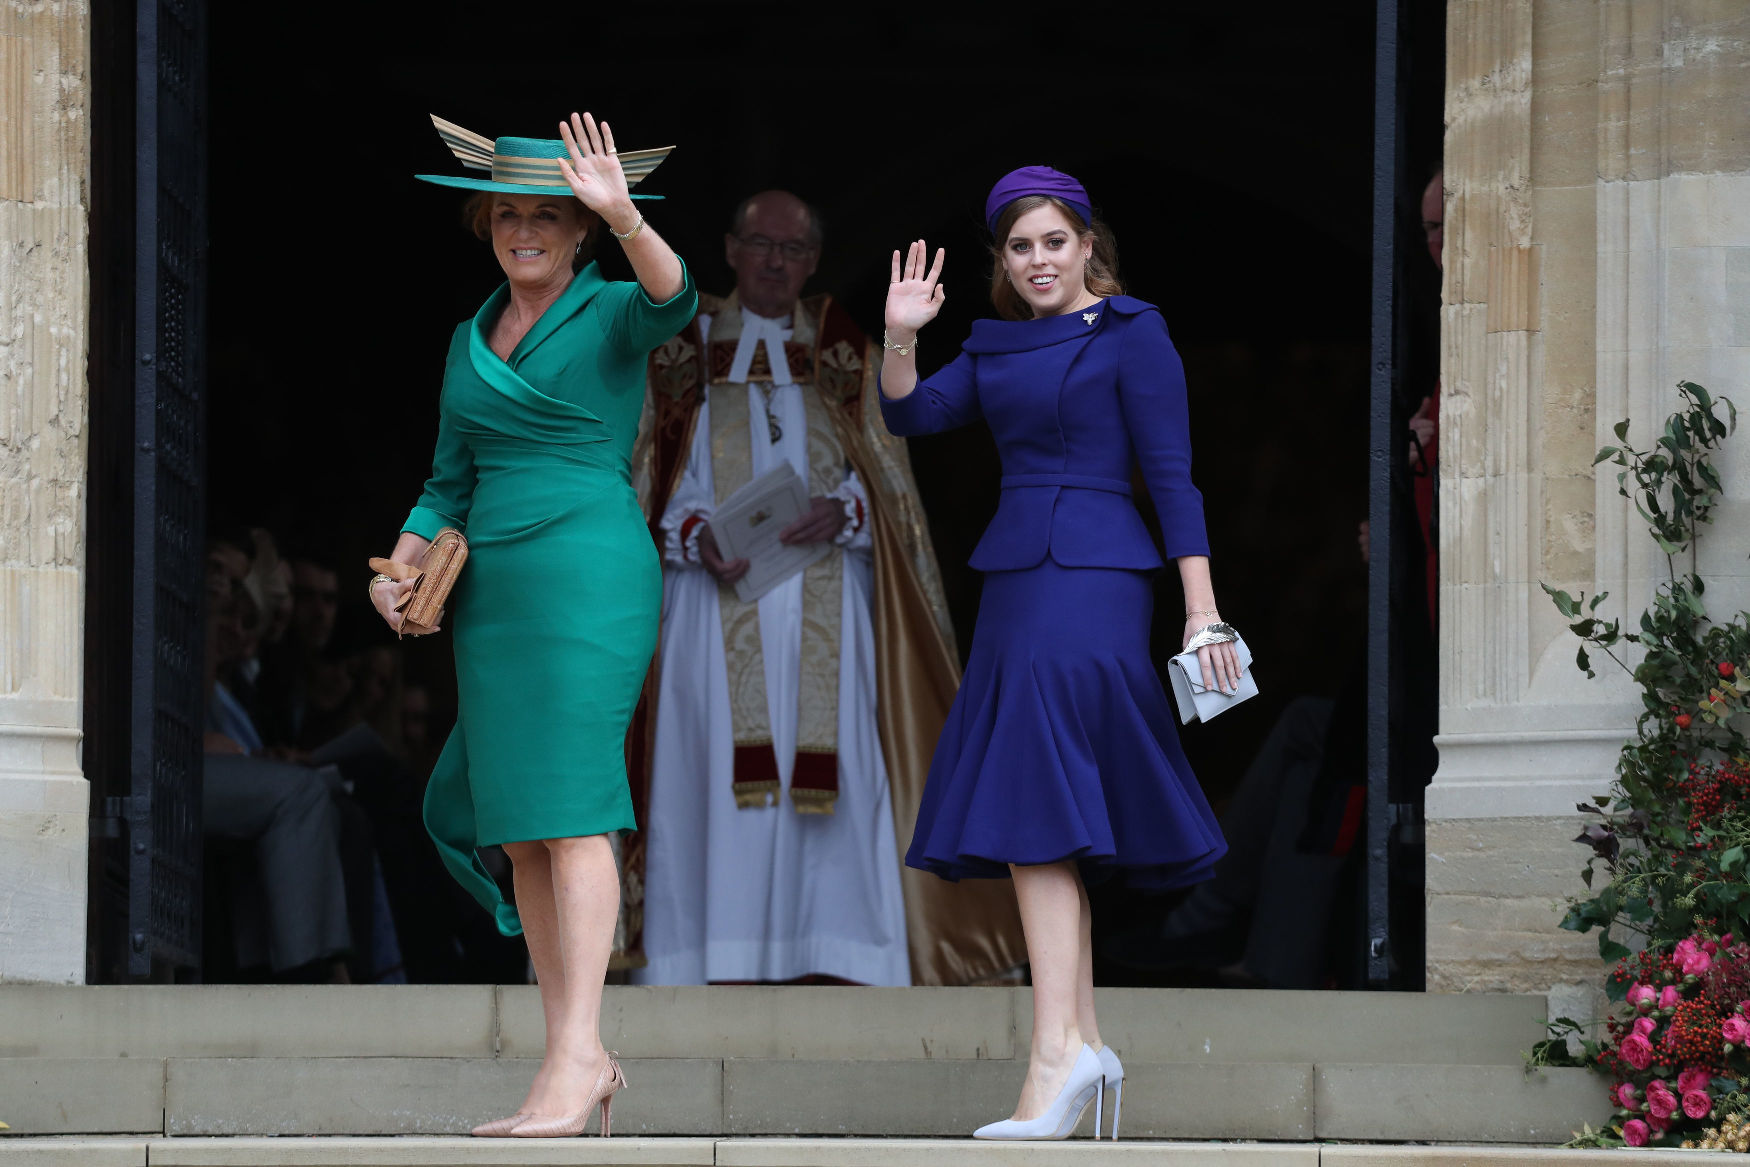 WINDSOR, ENGLAND - OCTOBER 12: Sarah Ferguson and Princess Beatrice of York arrive ahead of the wedding of Princess Eugenie of York to Jack Brooksbank at Windsor Castle on October 12, 2018 in Windsor, England. (Photo by Steve Parsons - WPA Pool/Getty Images)